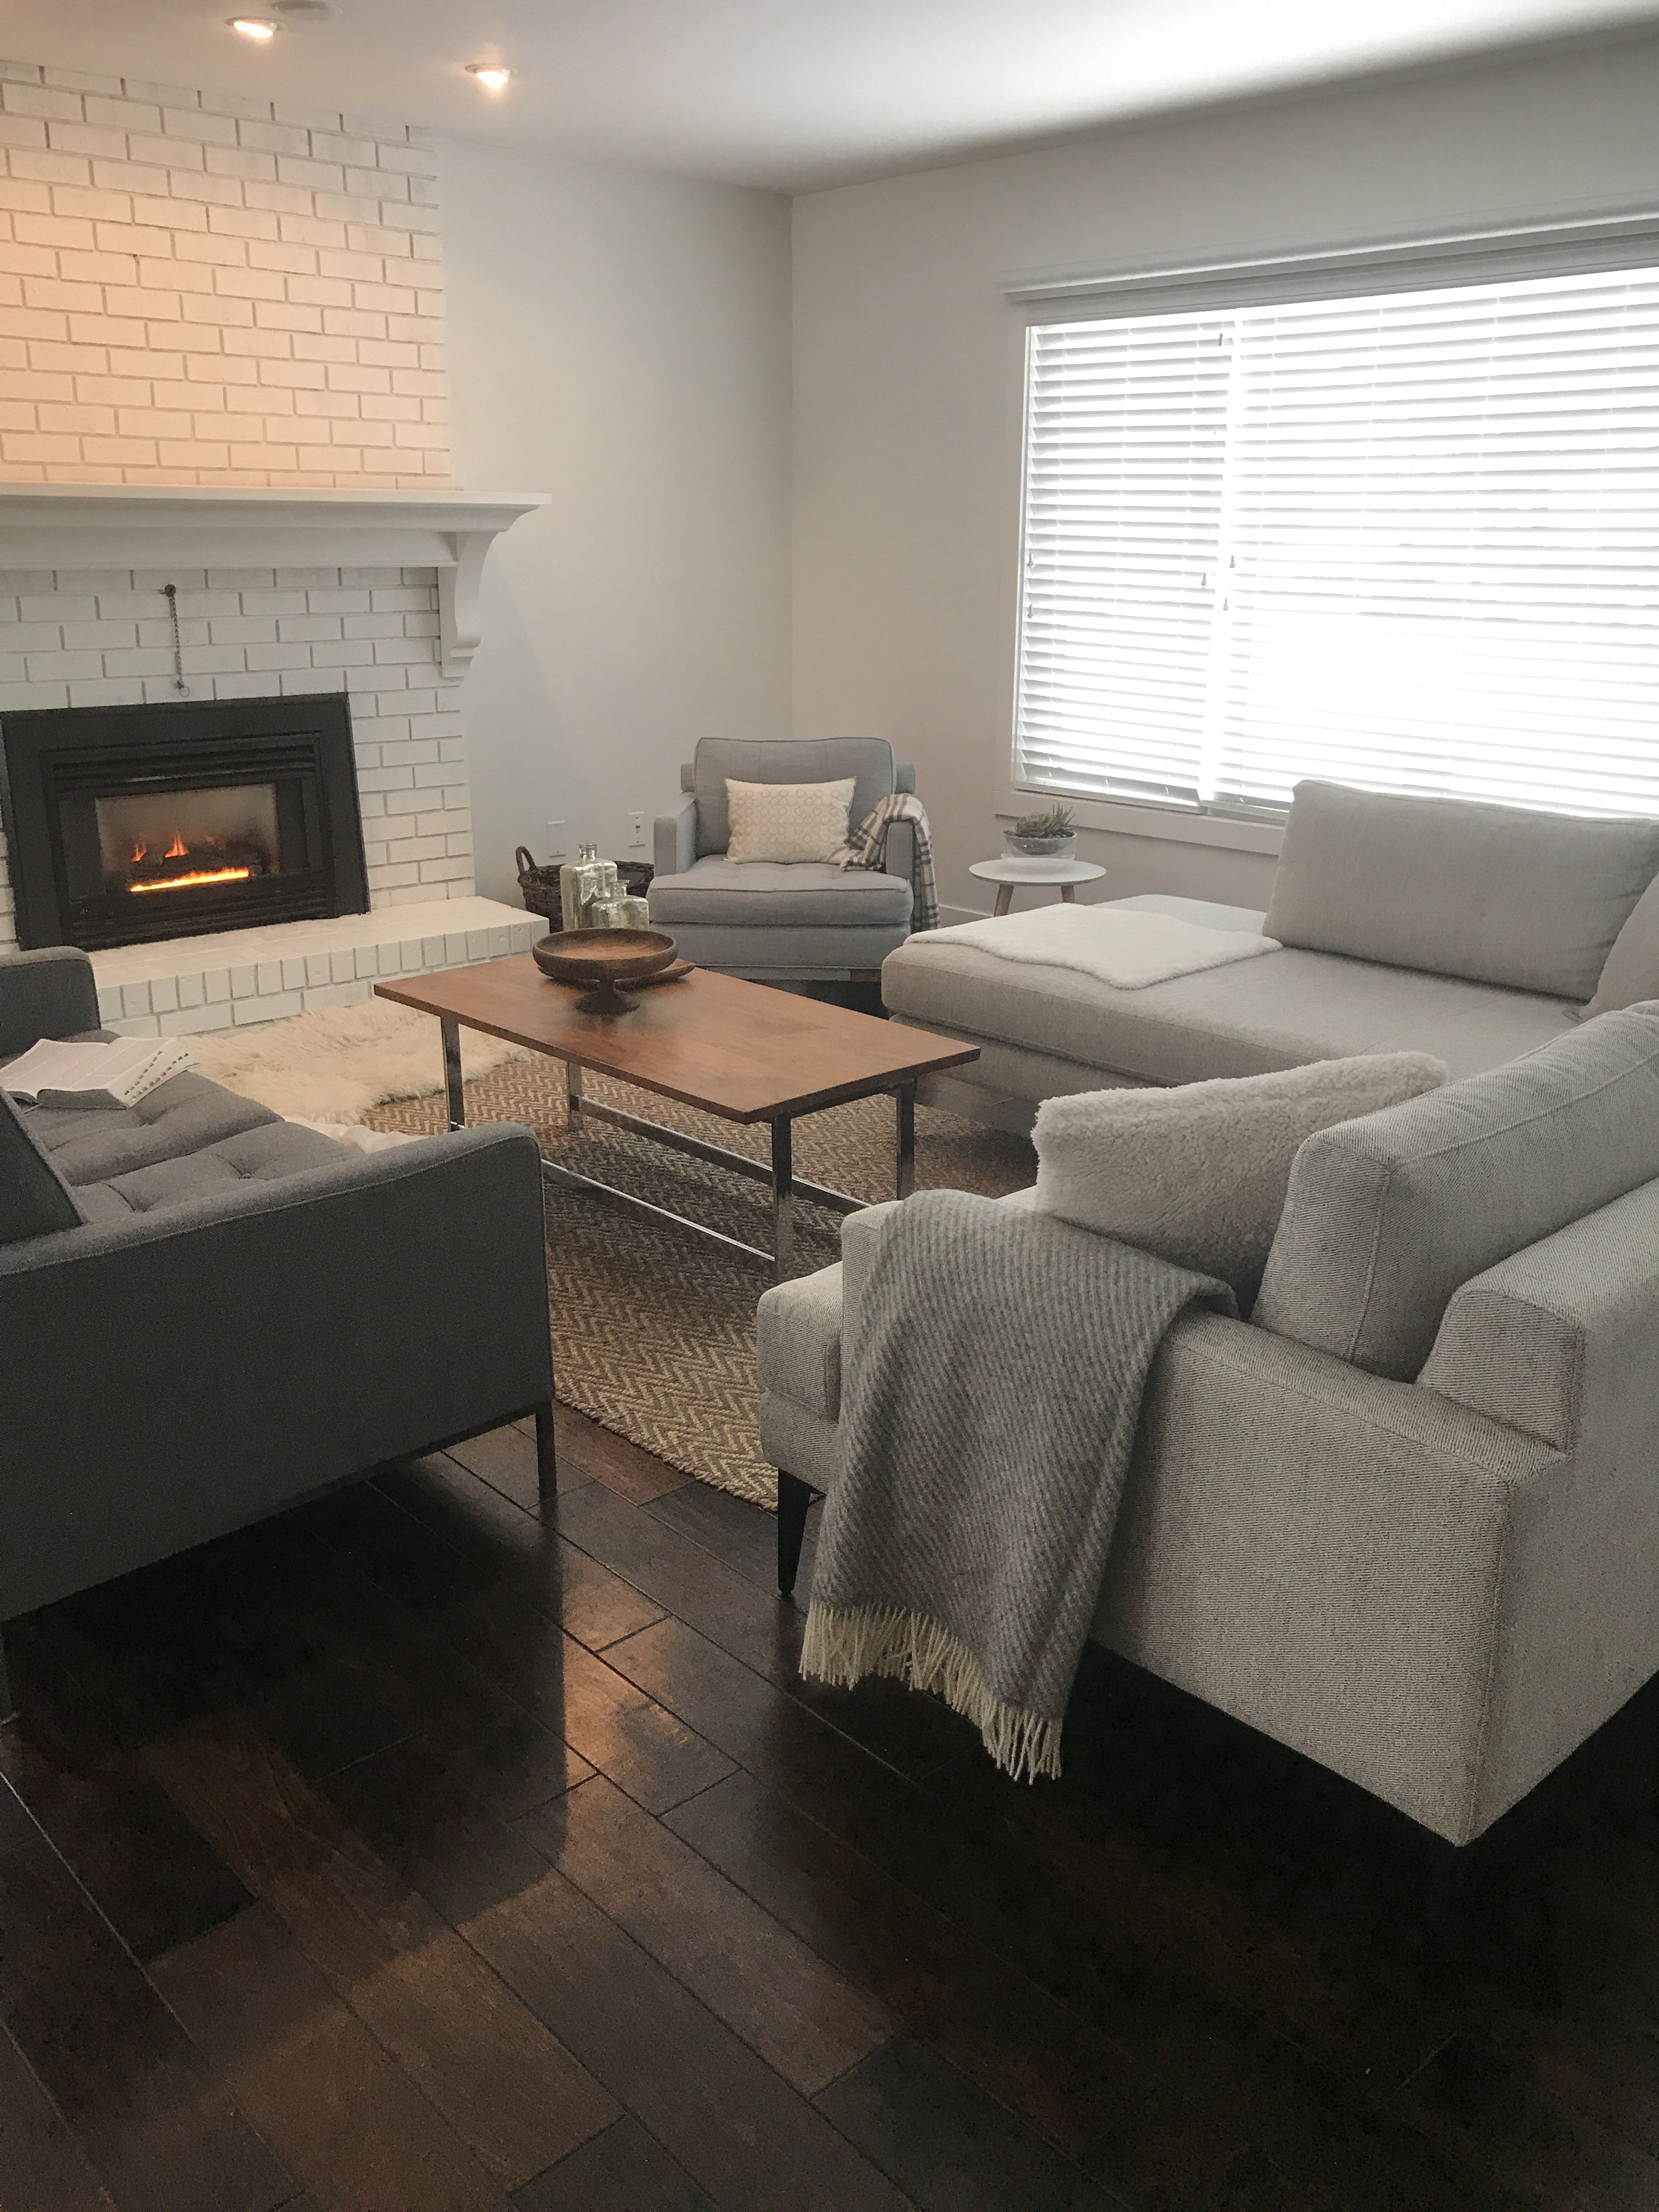 Fantastic Andes Sectional From West Elm Inspired Me To Change My Whole Alphanode Cool Chair Designs And Ideas Alphanodeonline